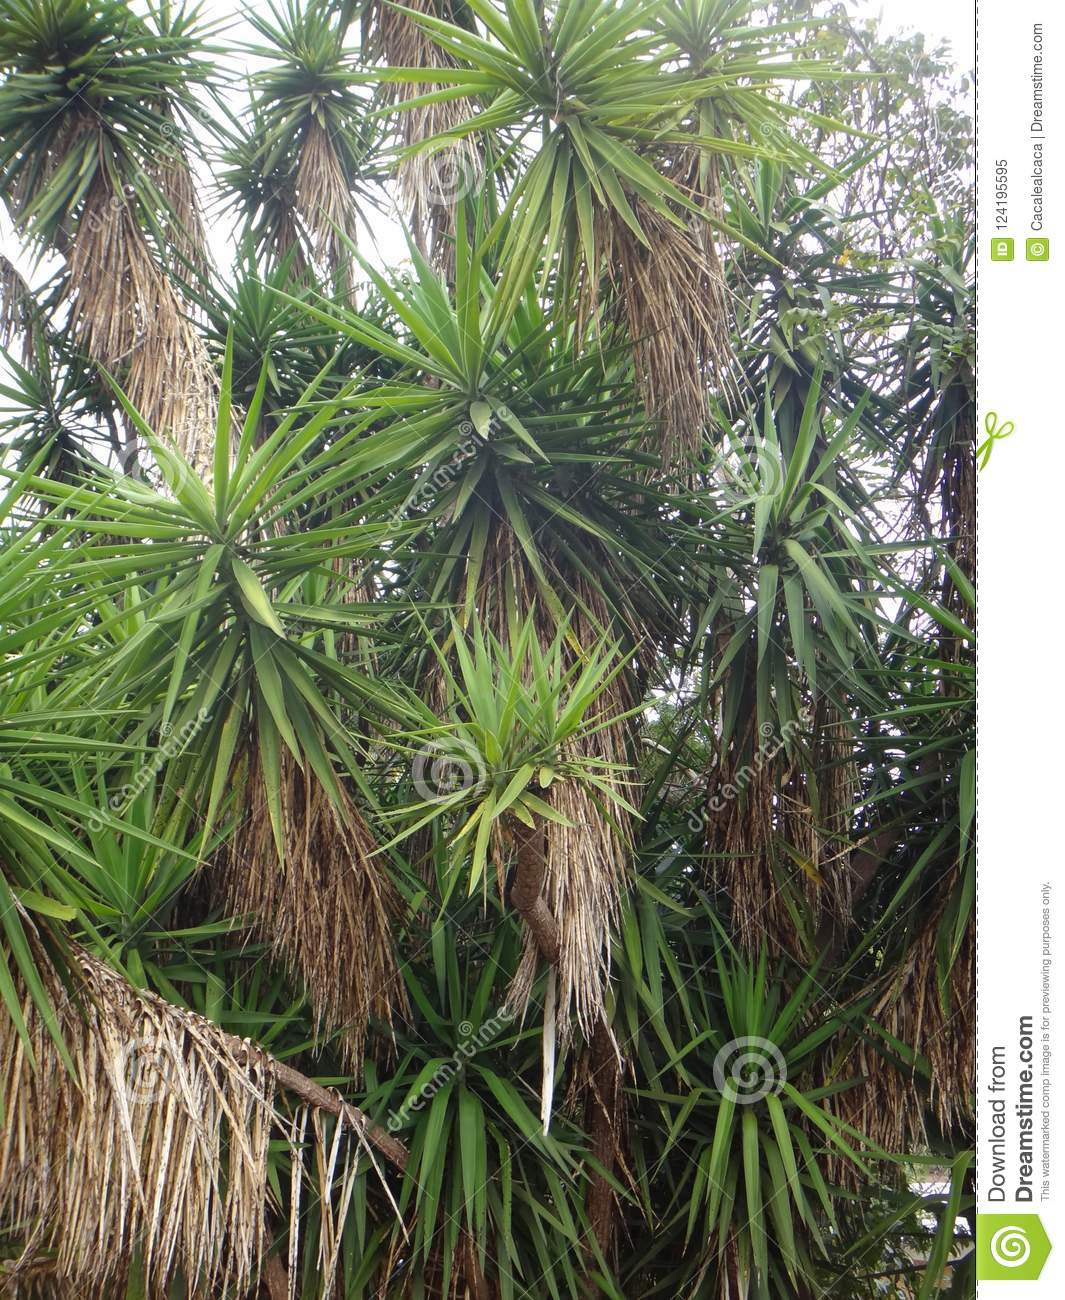 Branches of the yucca plant